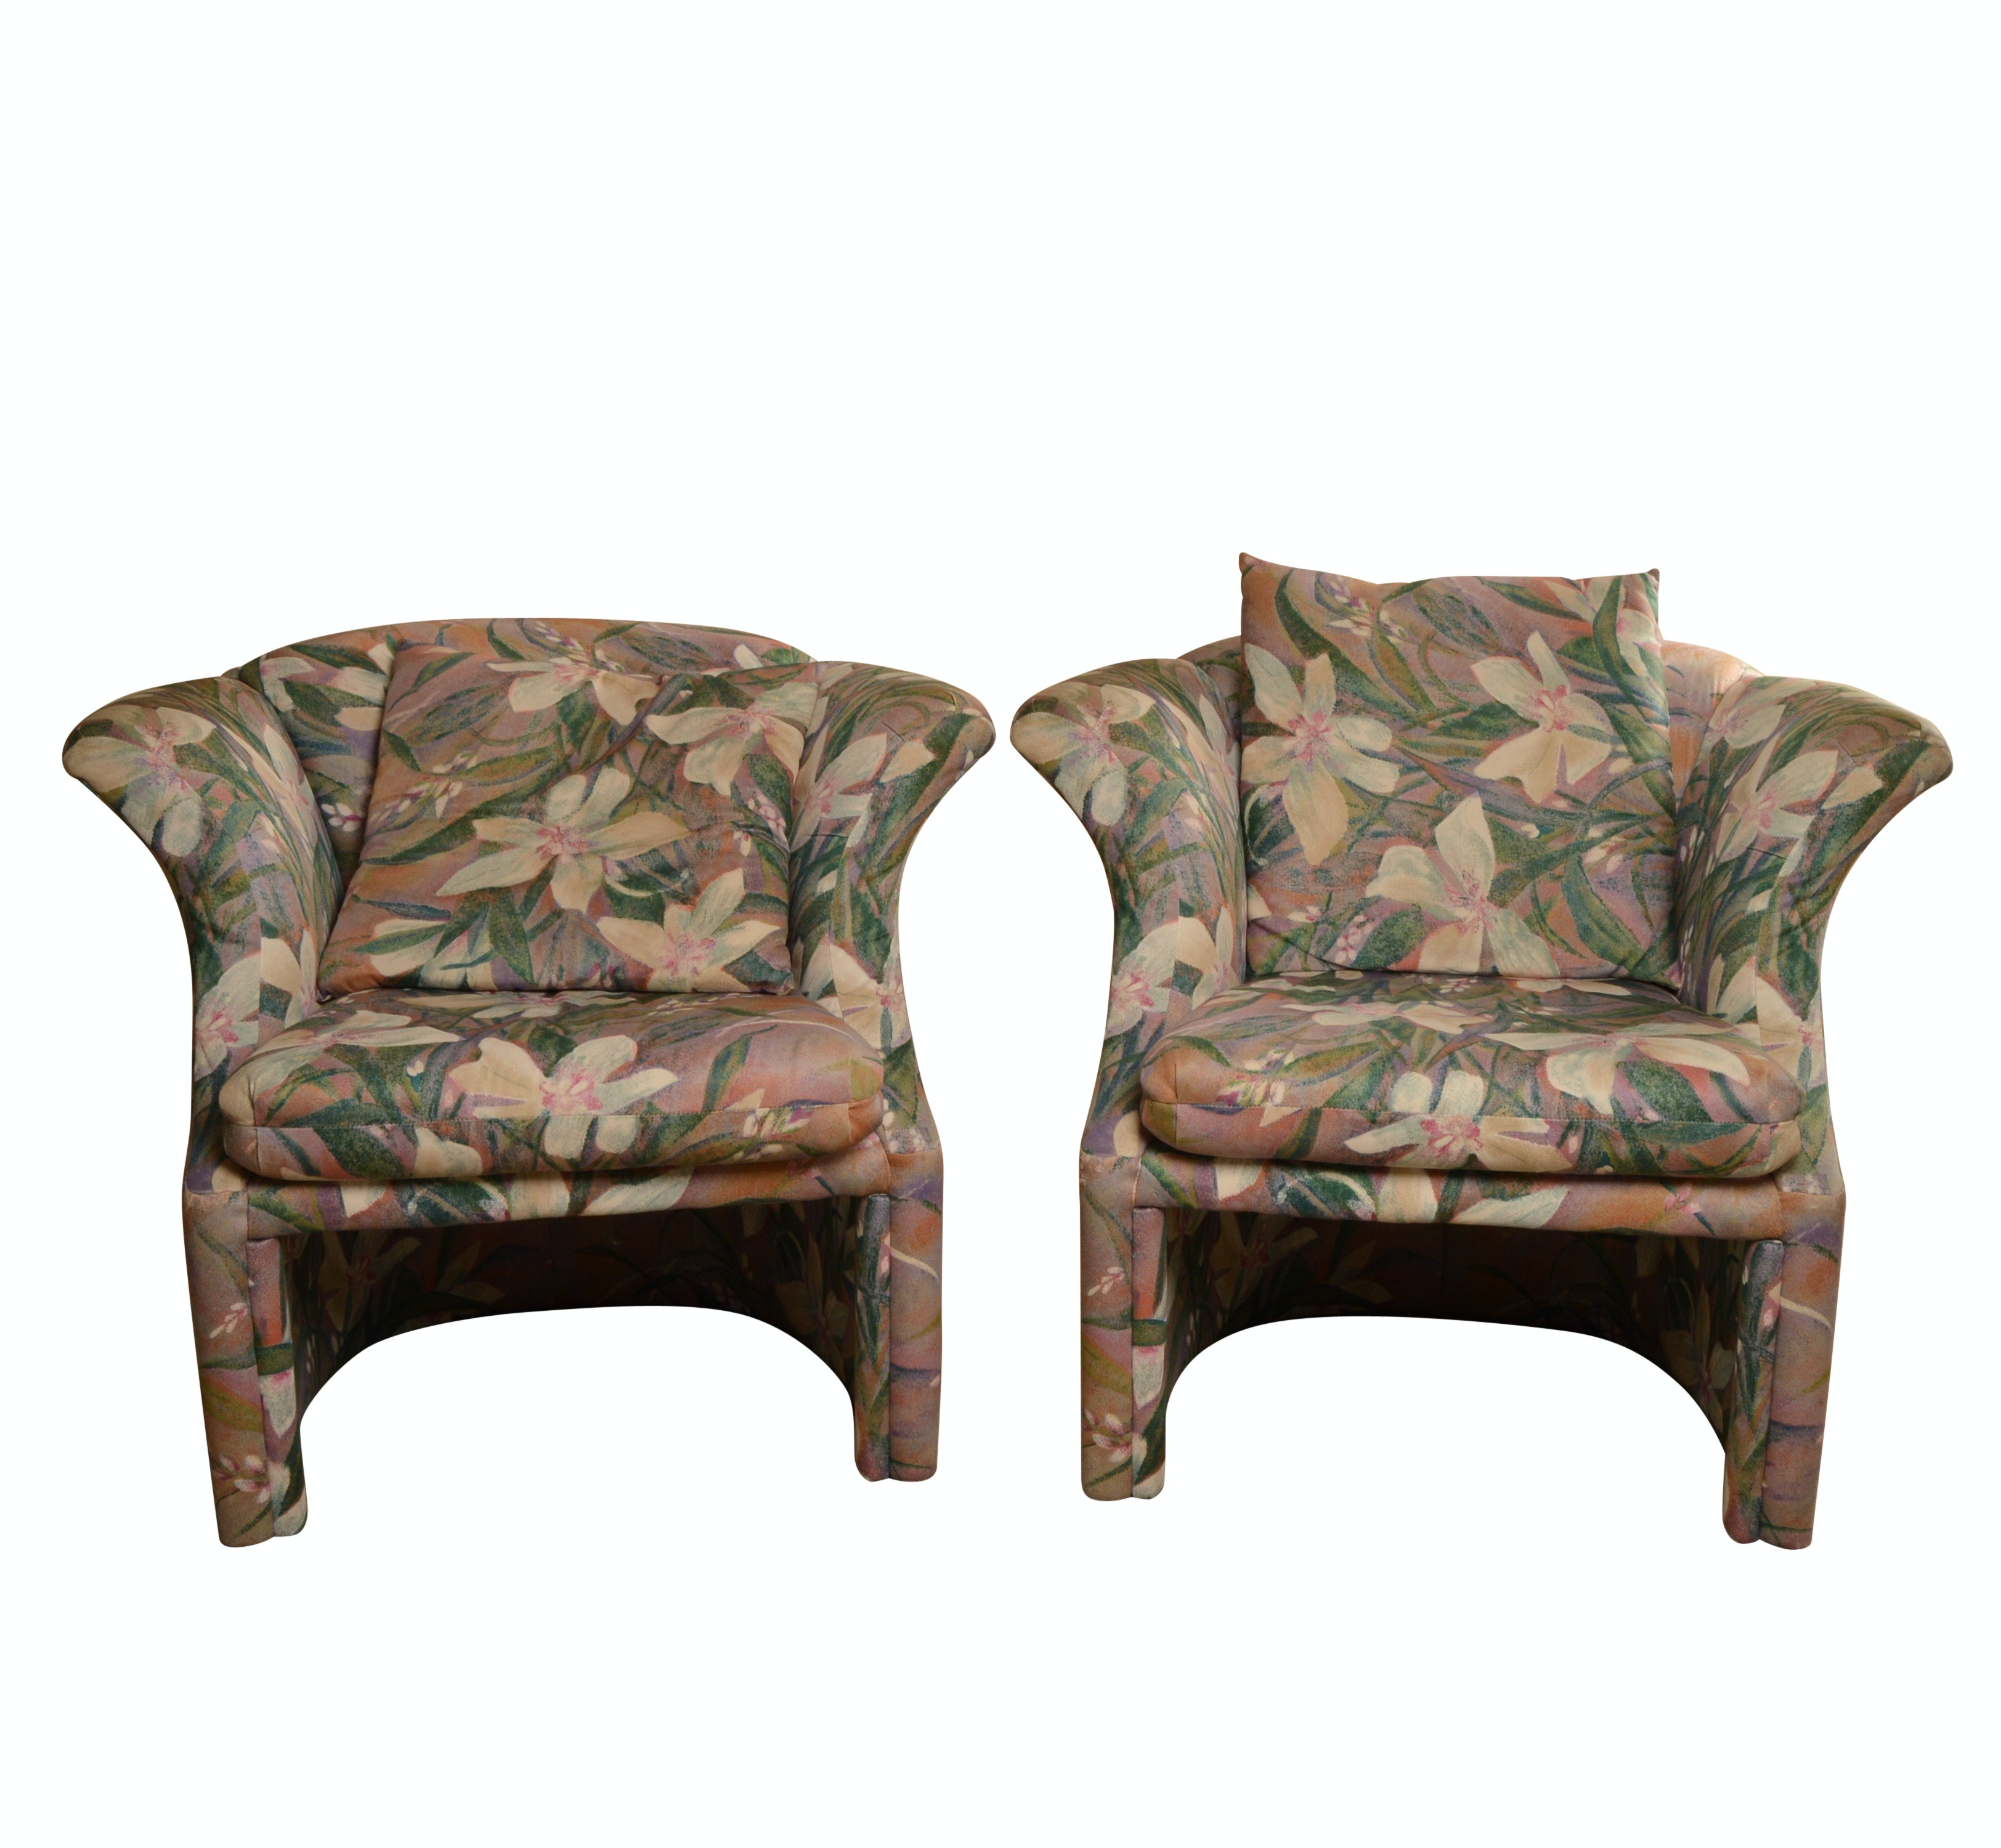 Contemporary Style Floral Club Chairs